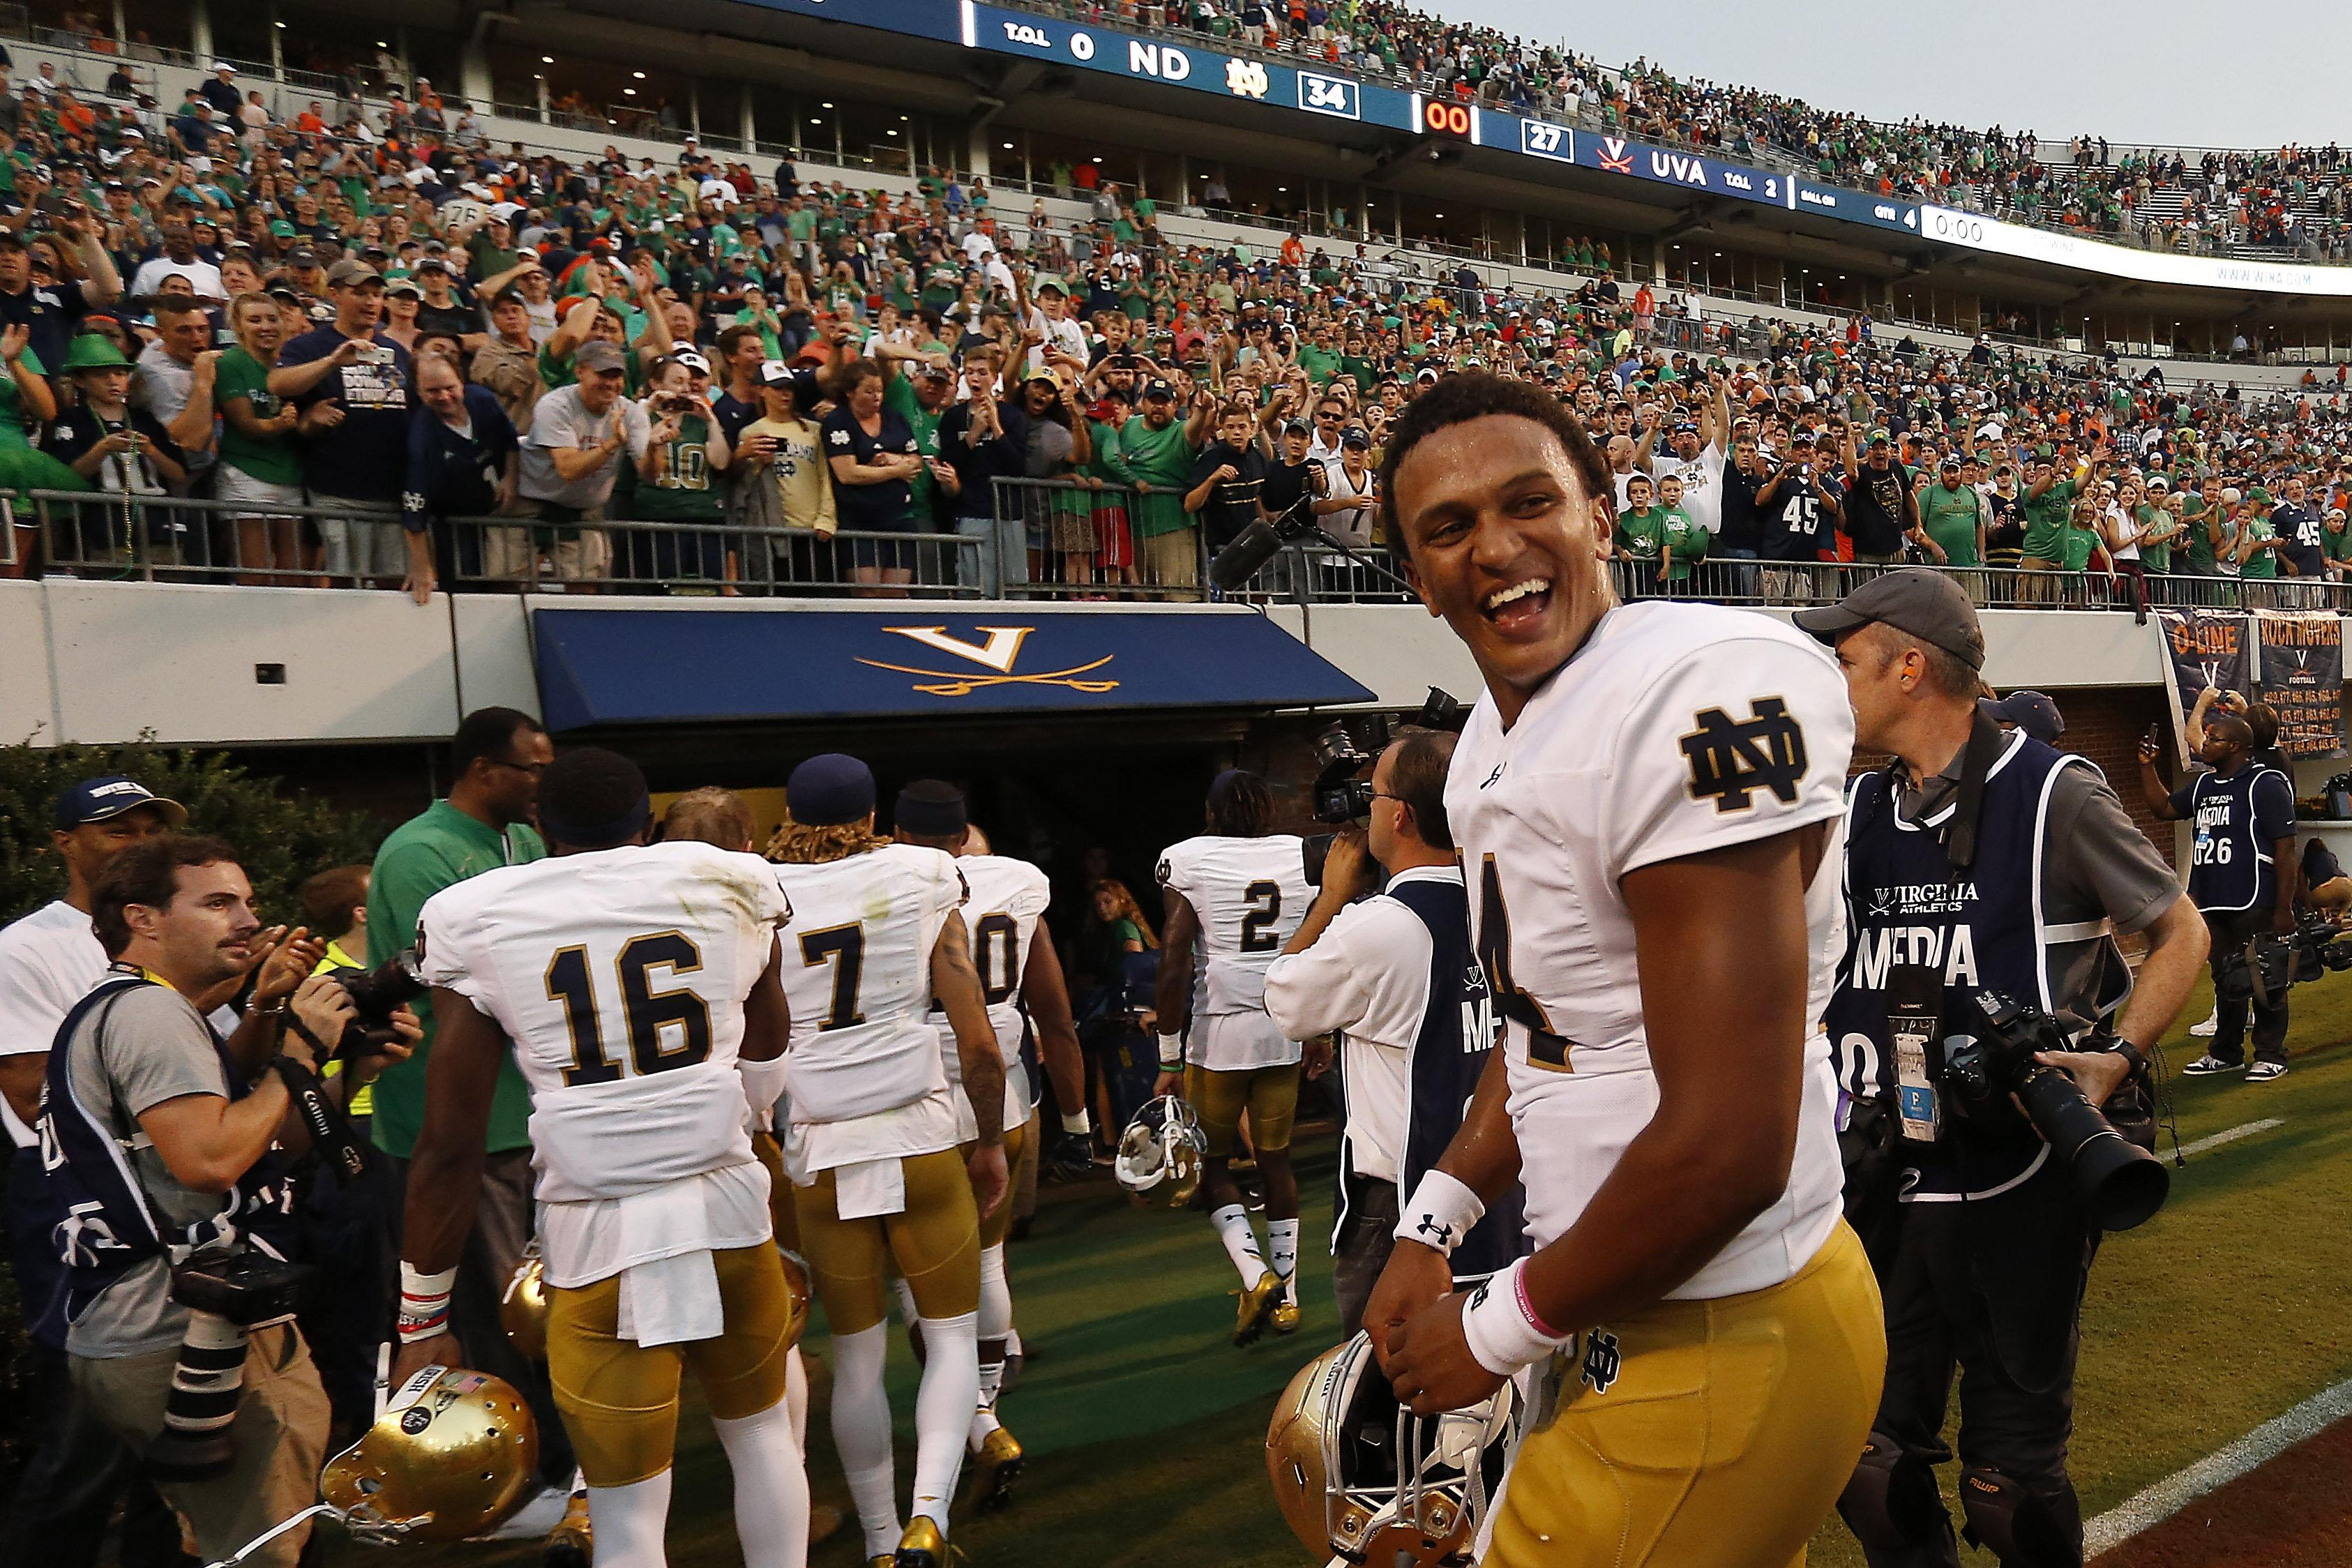 Notre Dame Football Brian Kelly Coached Qbs Have Fared Well In 1st Starts Ncaa Com